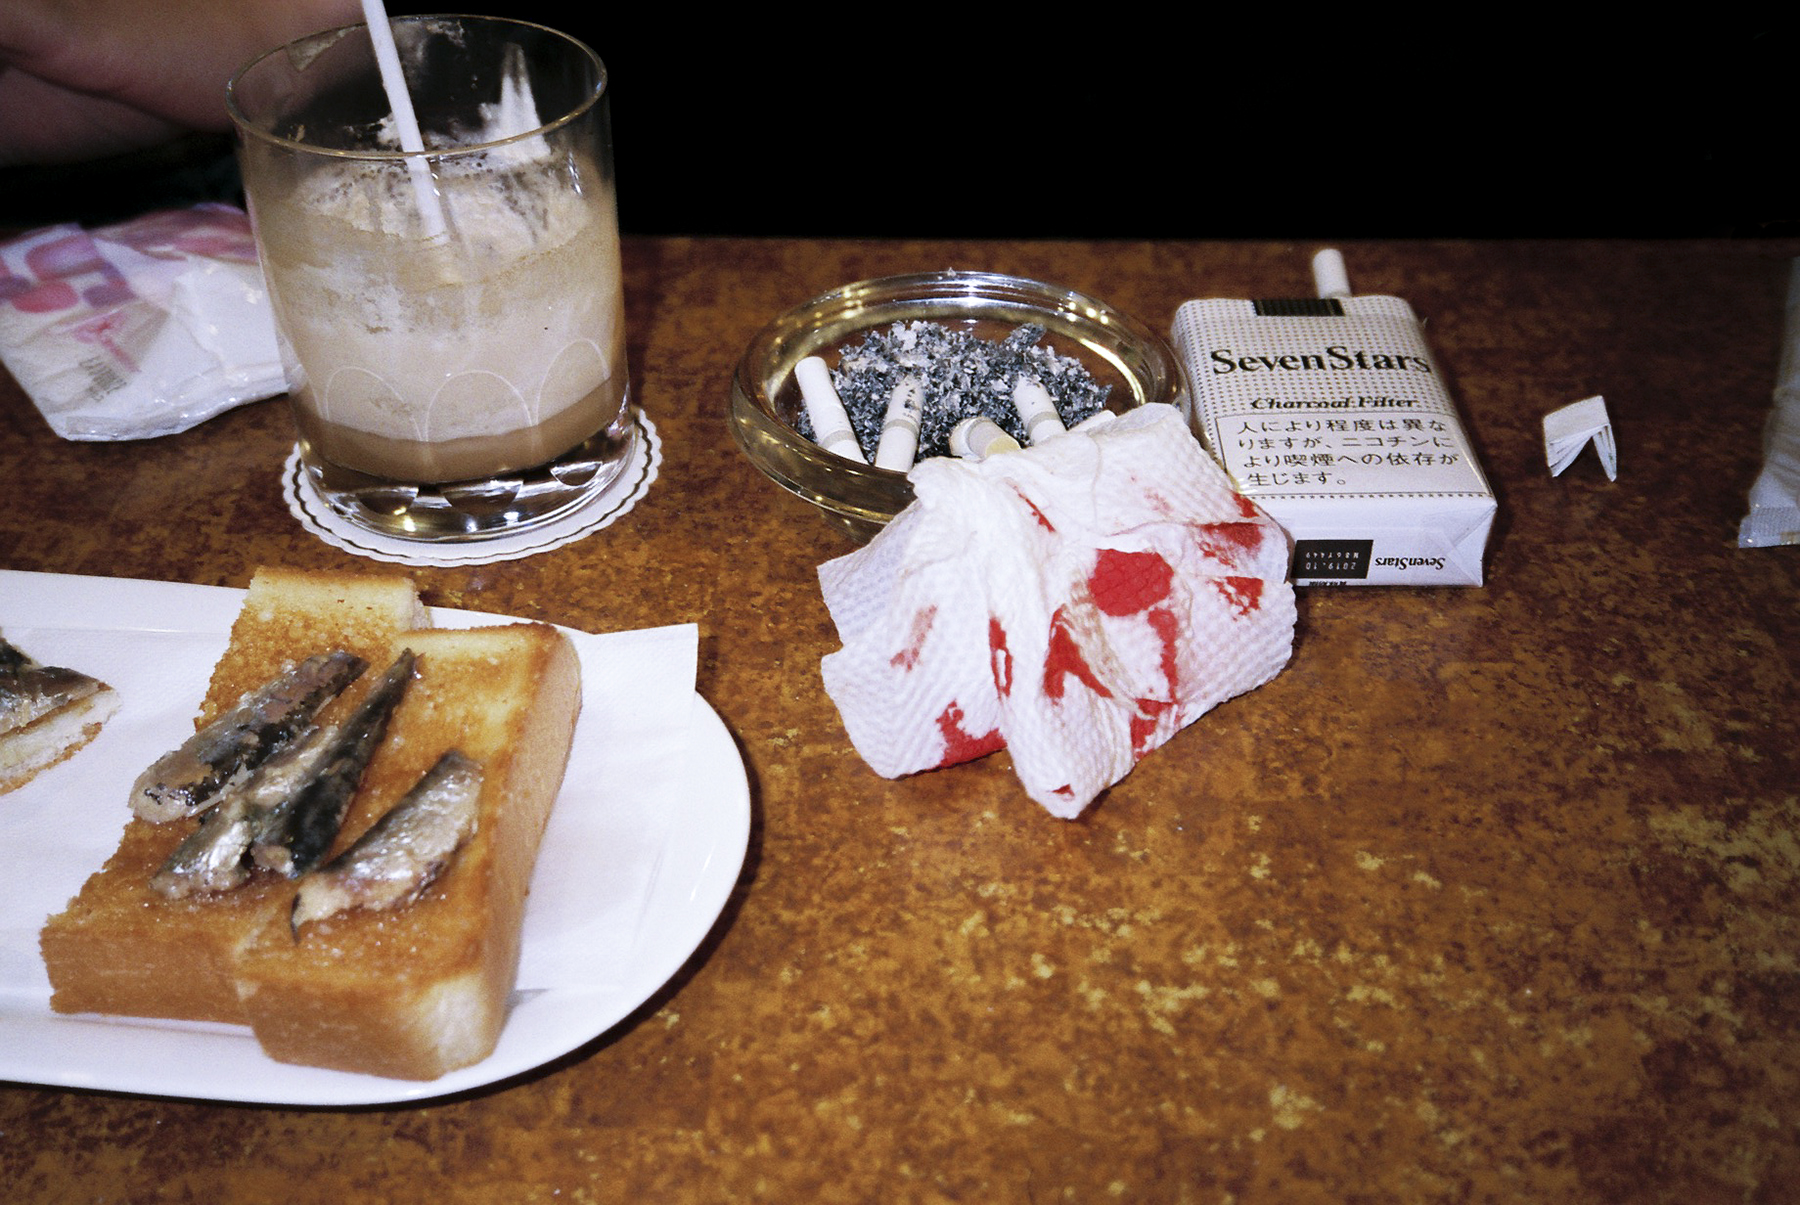 Cafe with bleed